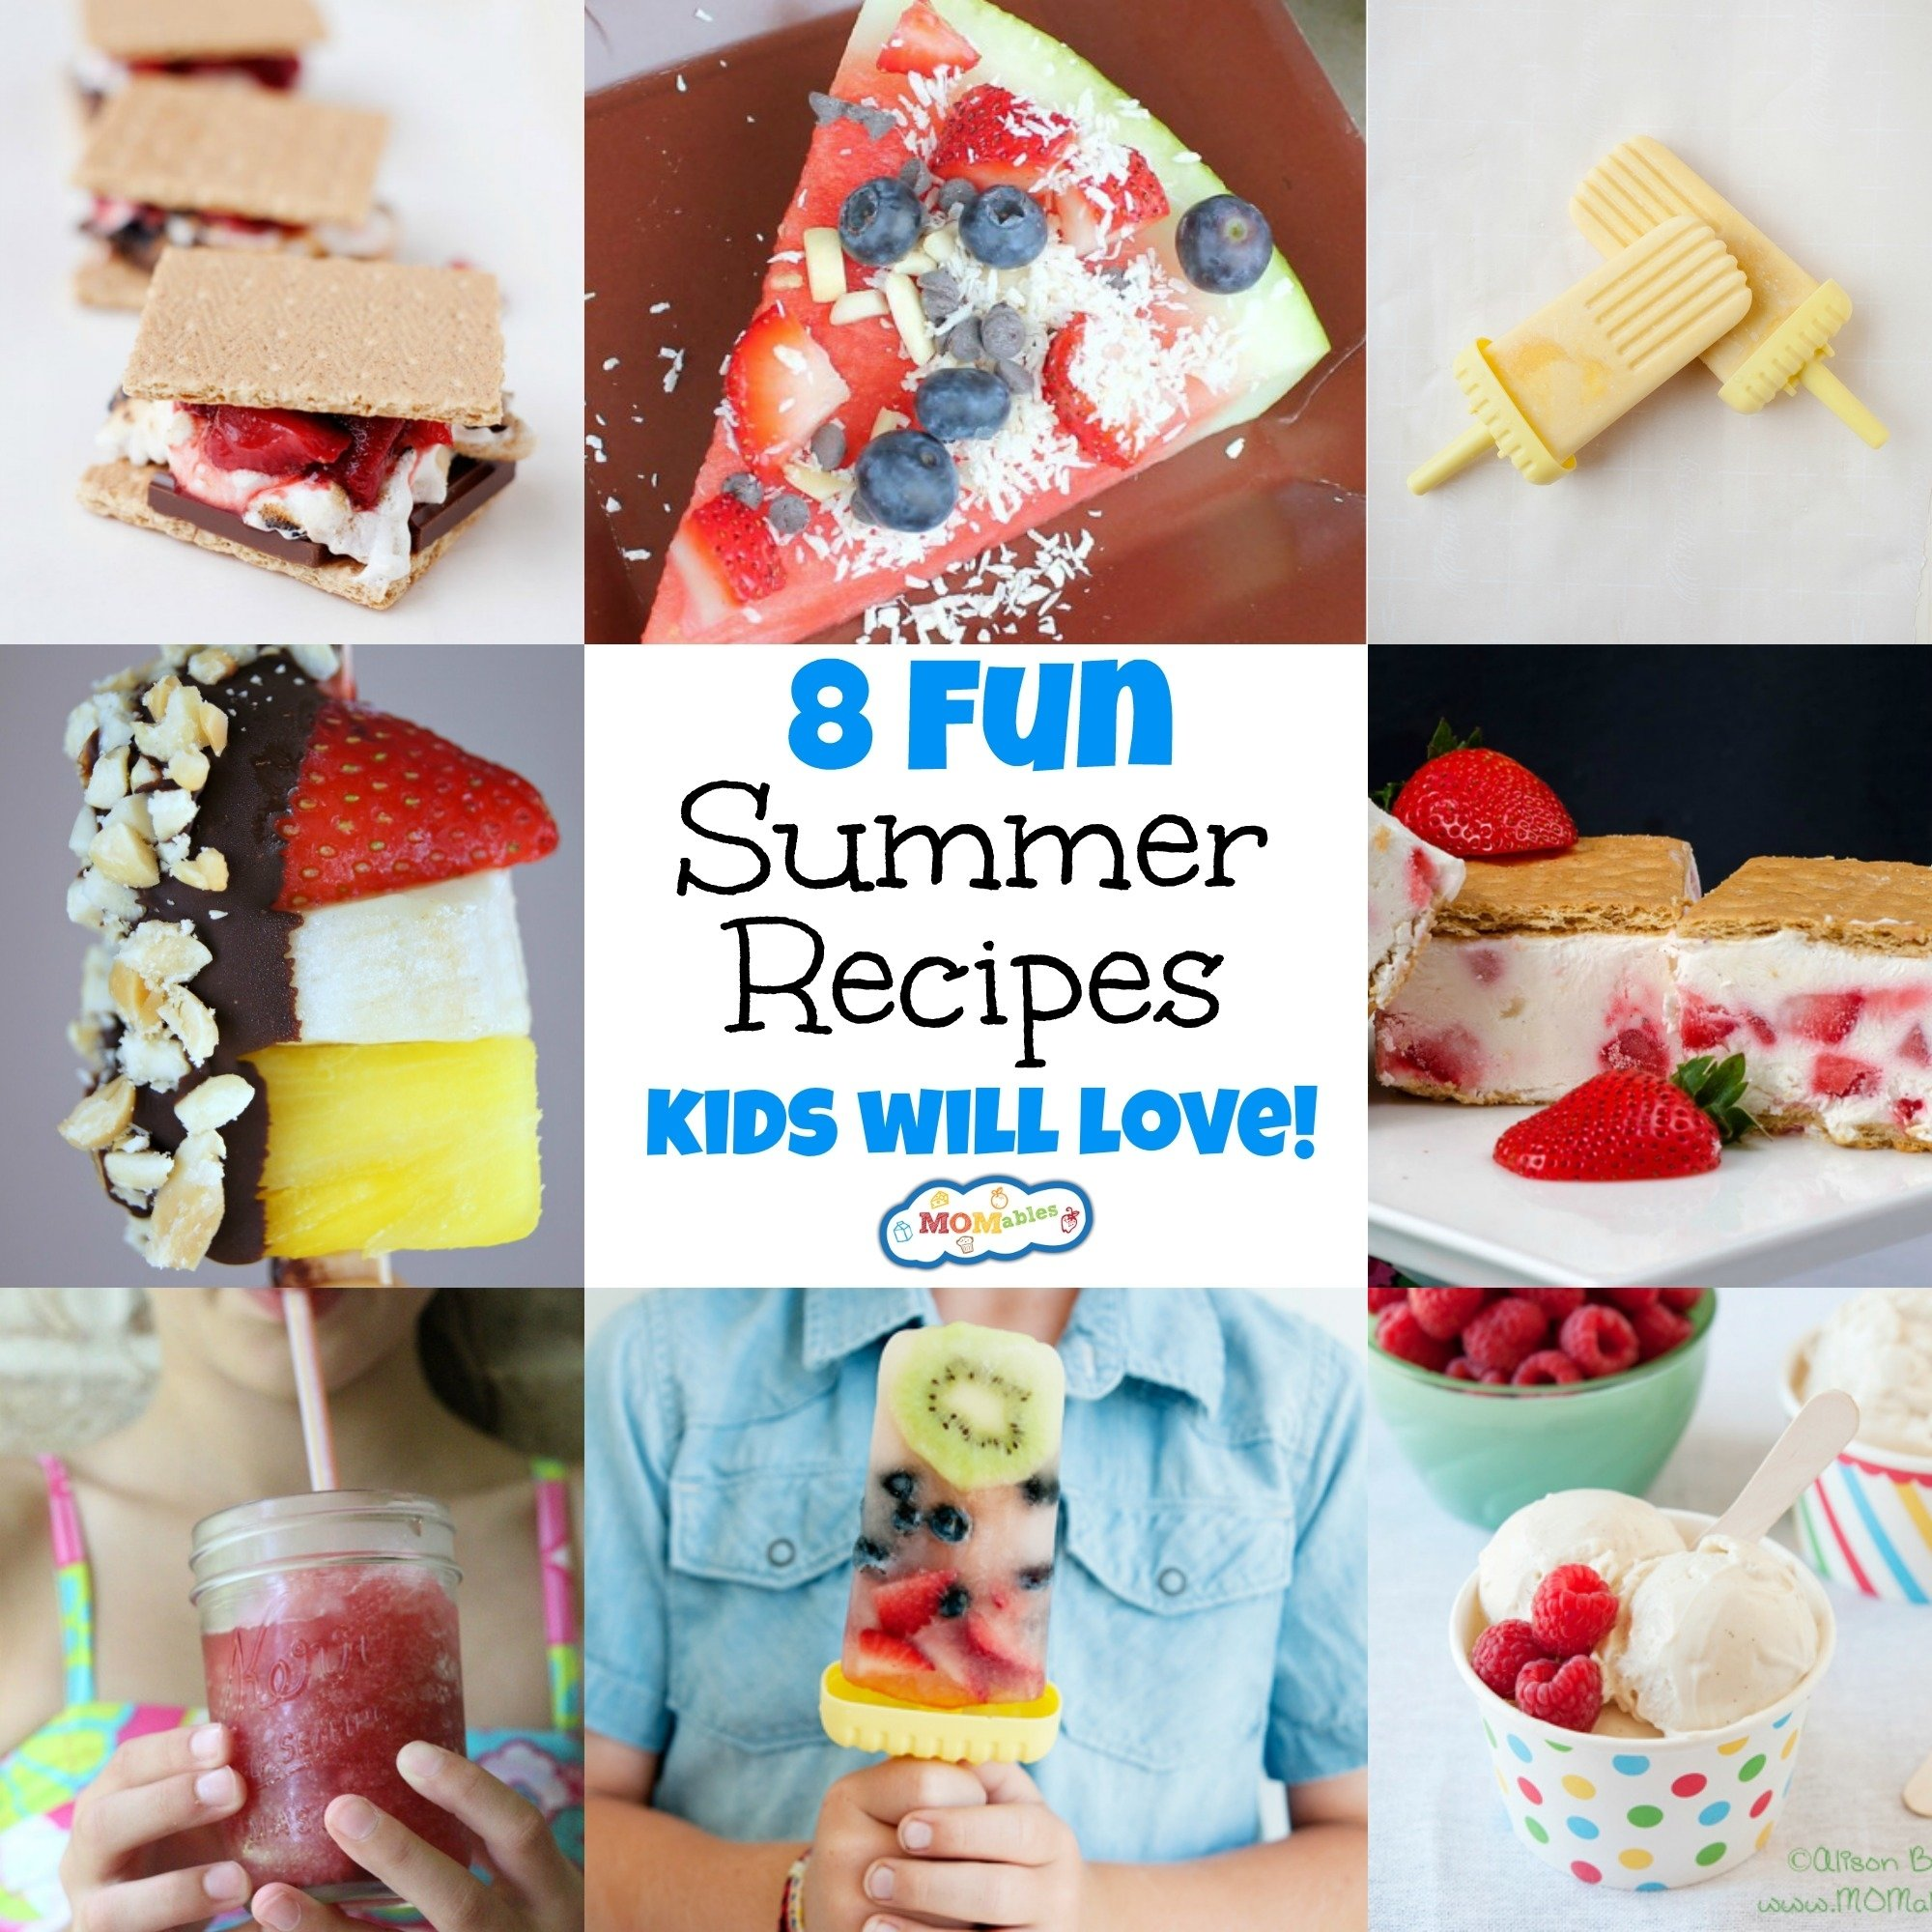 10 Trendy Summer Lunch Ideas For Kids 8 fun summer recipes kids will love momables good food plan on it 2020